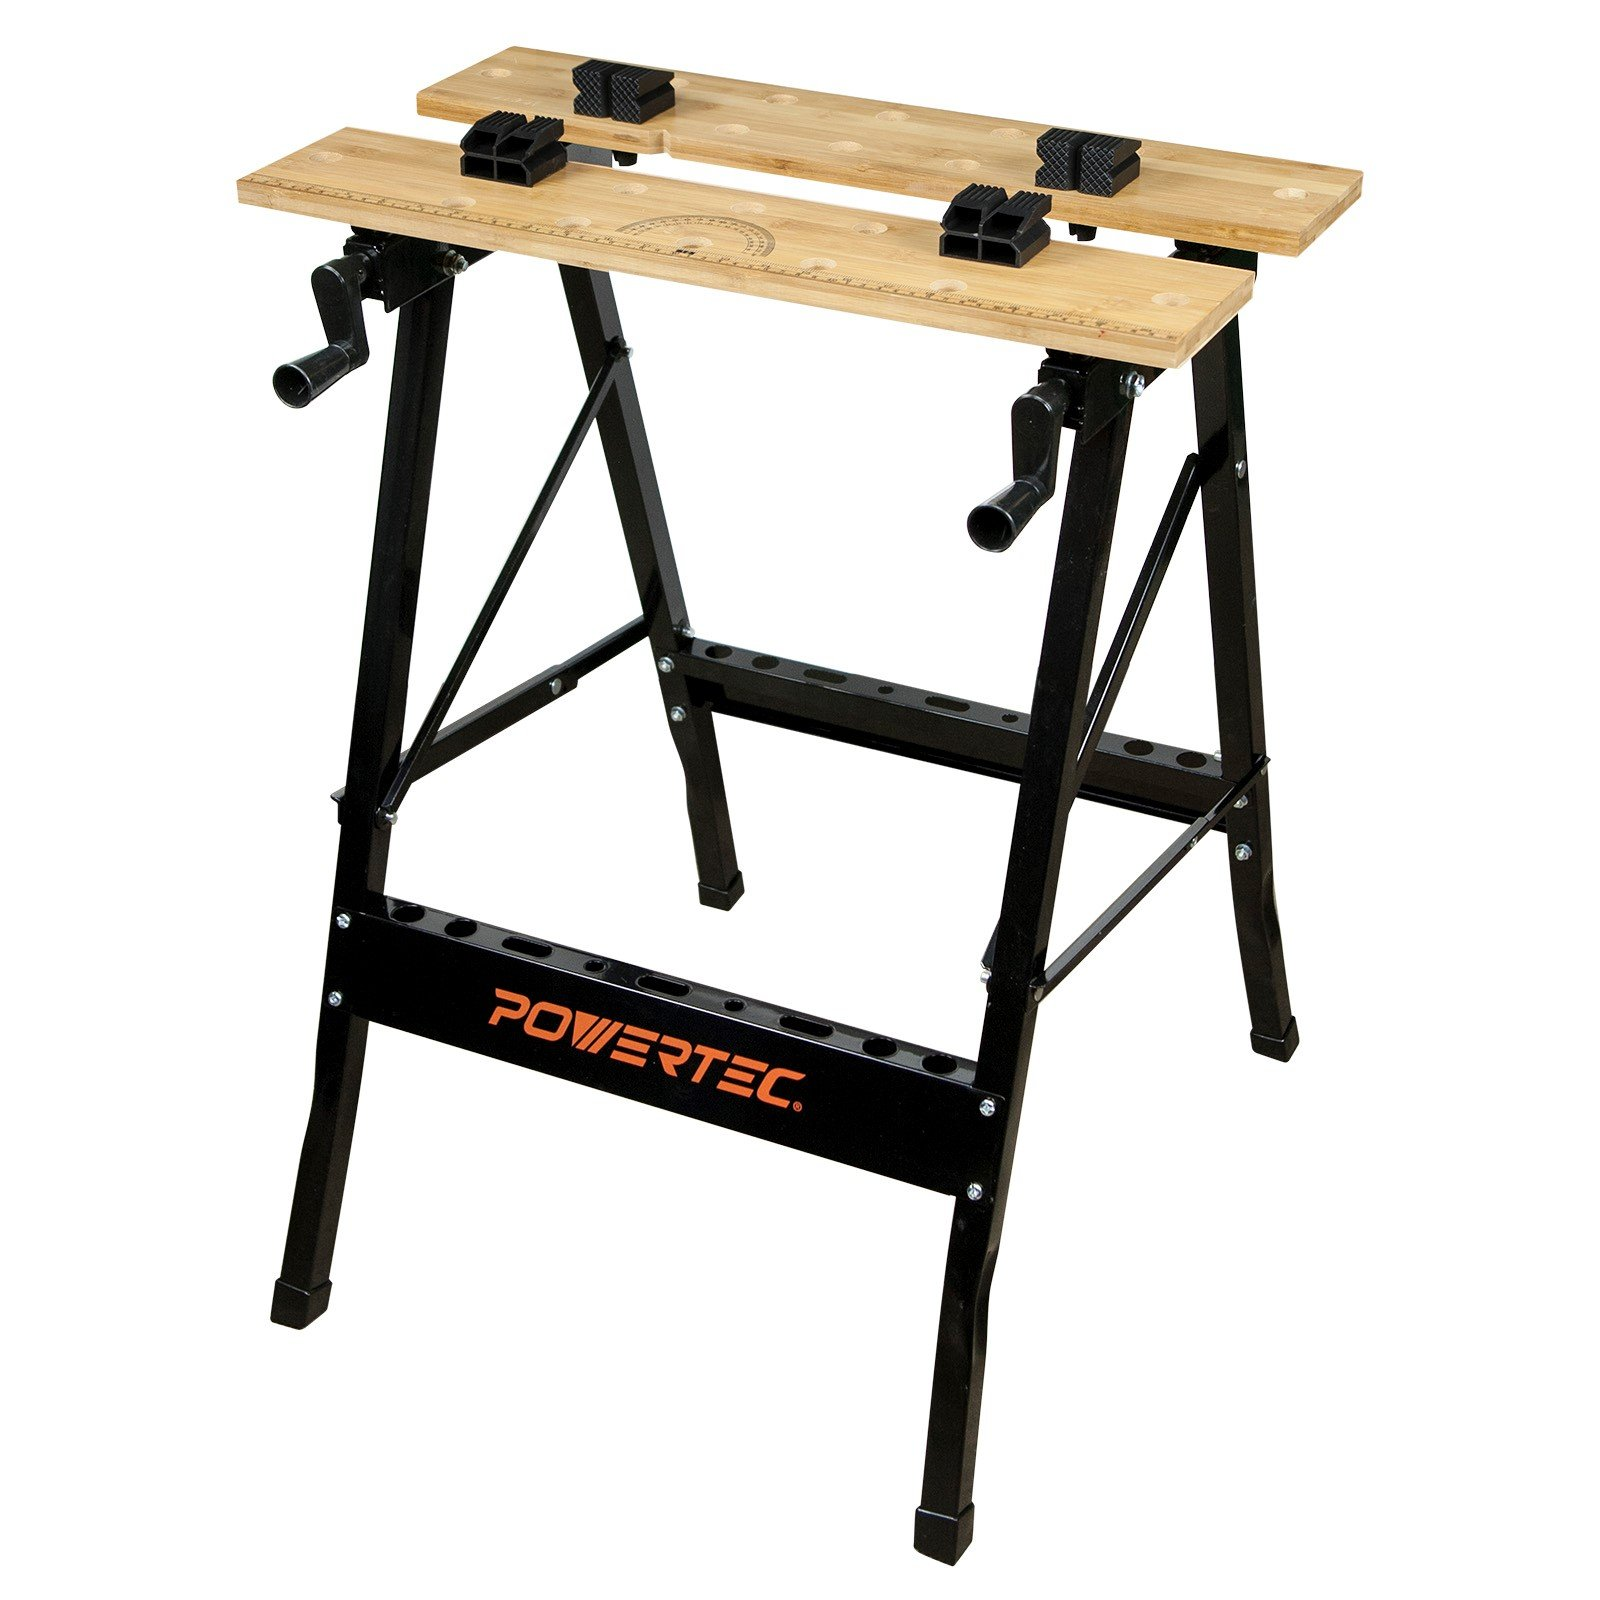 POWERTEC MT4006 Workbench with Bamboo Top